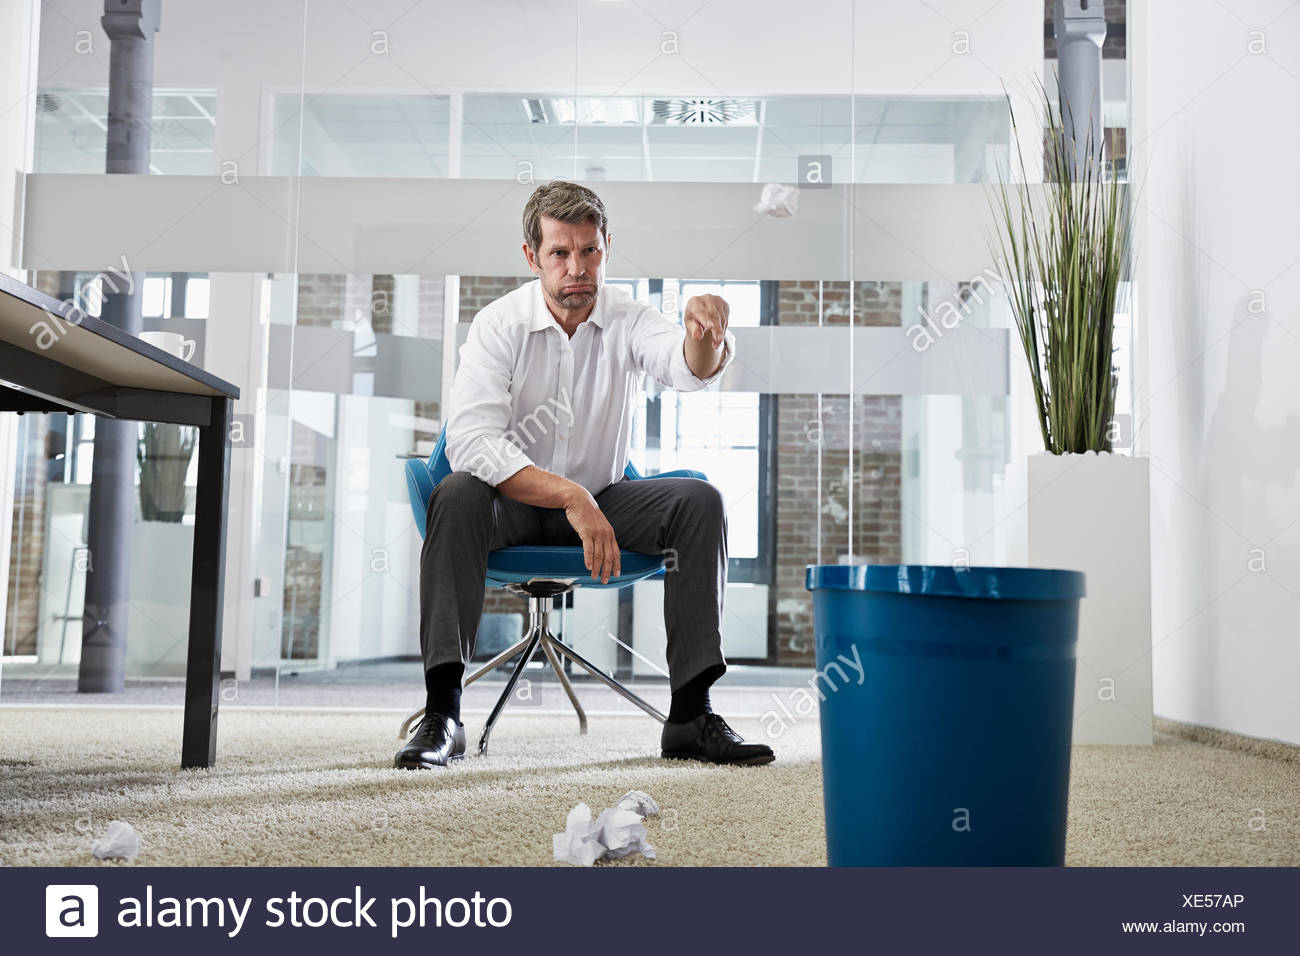 Businessman in office throwing crumpled paper in wastepaper basket - Stock Image